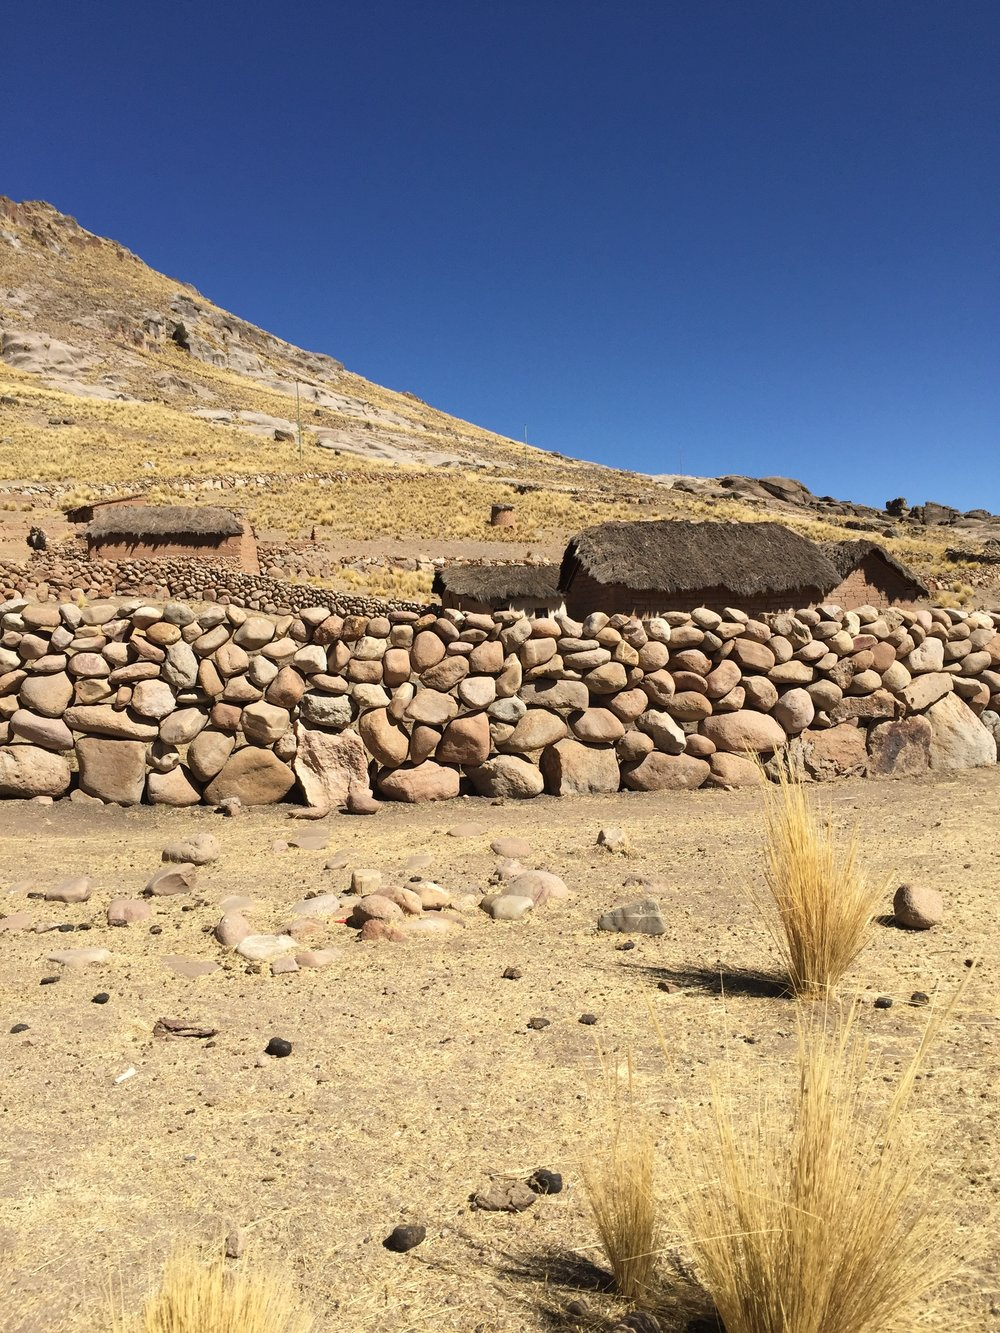 Dry joint stone masonry walls serve as llama pens among the thatched roof adobe homes of the Indigenous village of Coiyuma at 13,000+ feet.    Coiyuma, Bolivia